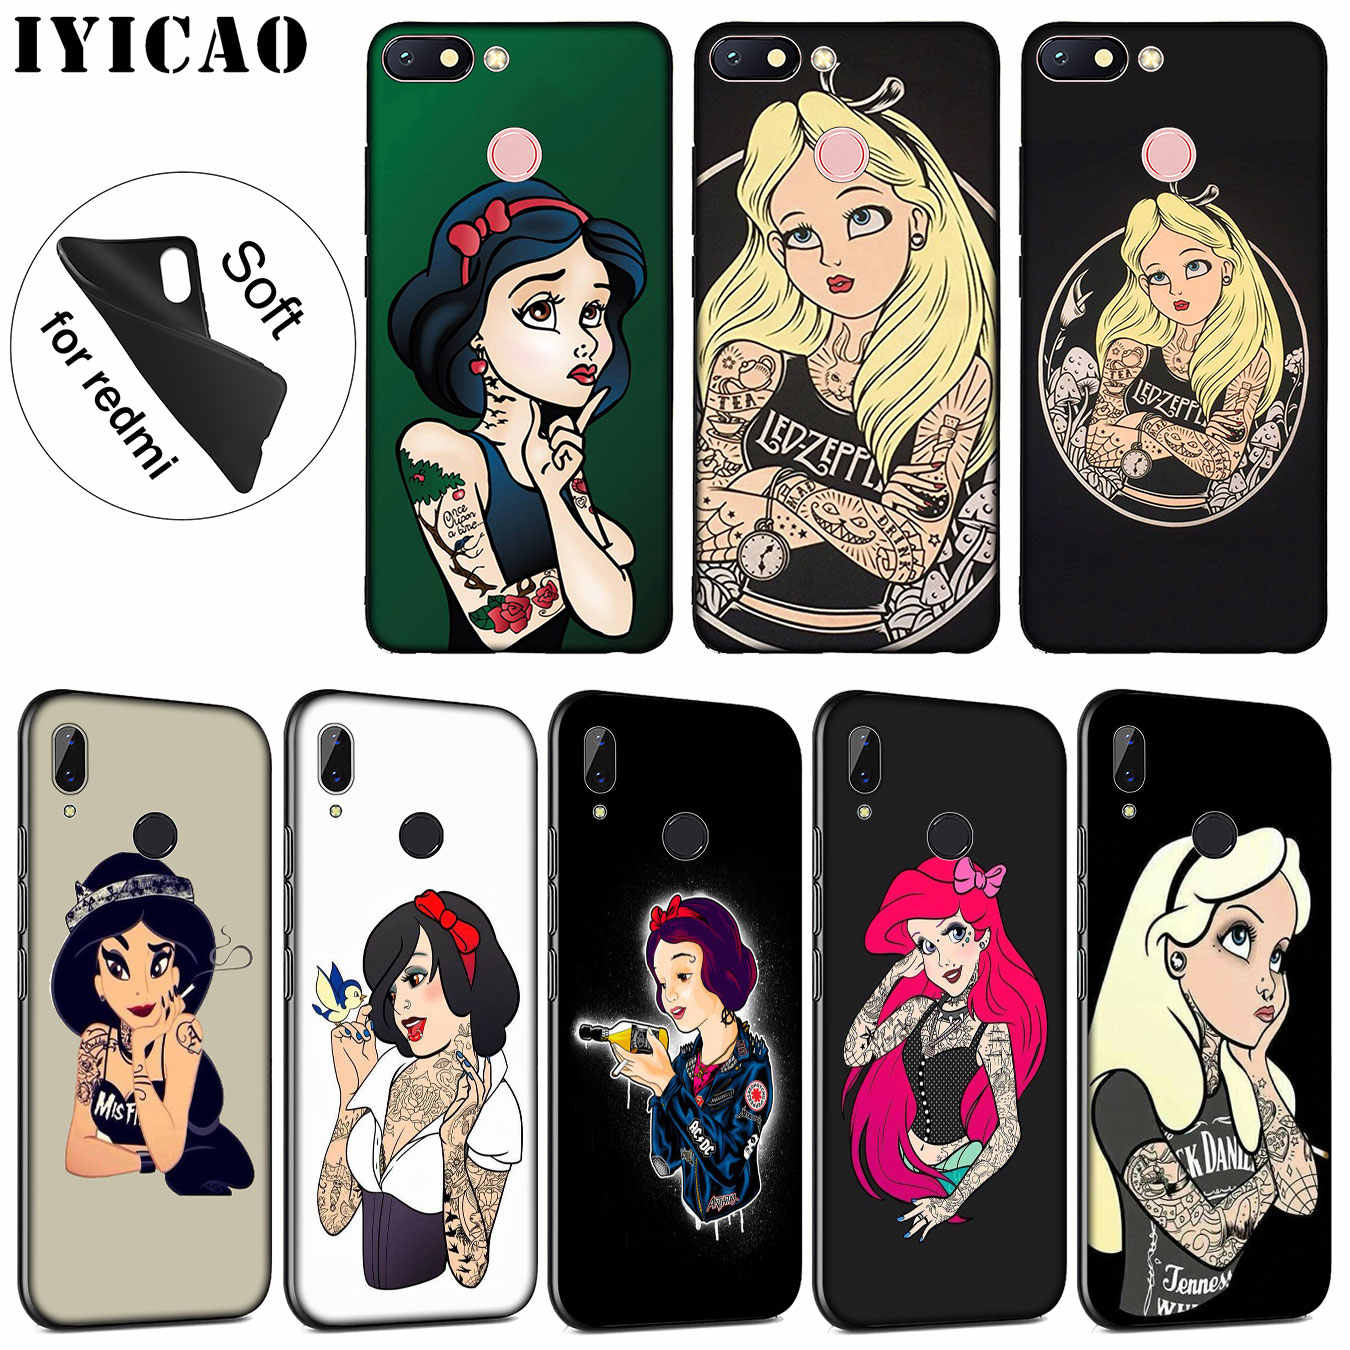 Getatoeëerde Alice Ariel Jasmijn prinses cartoon Soft Case voor Xiaomi Redmi K20 8A 7A 6A 5A S2 4X 4A GAAN note 8 7 5 Plus 6 Pro